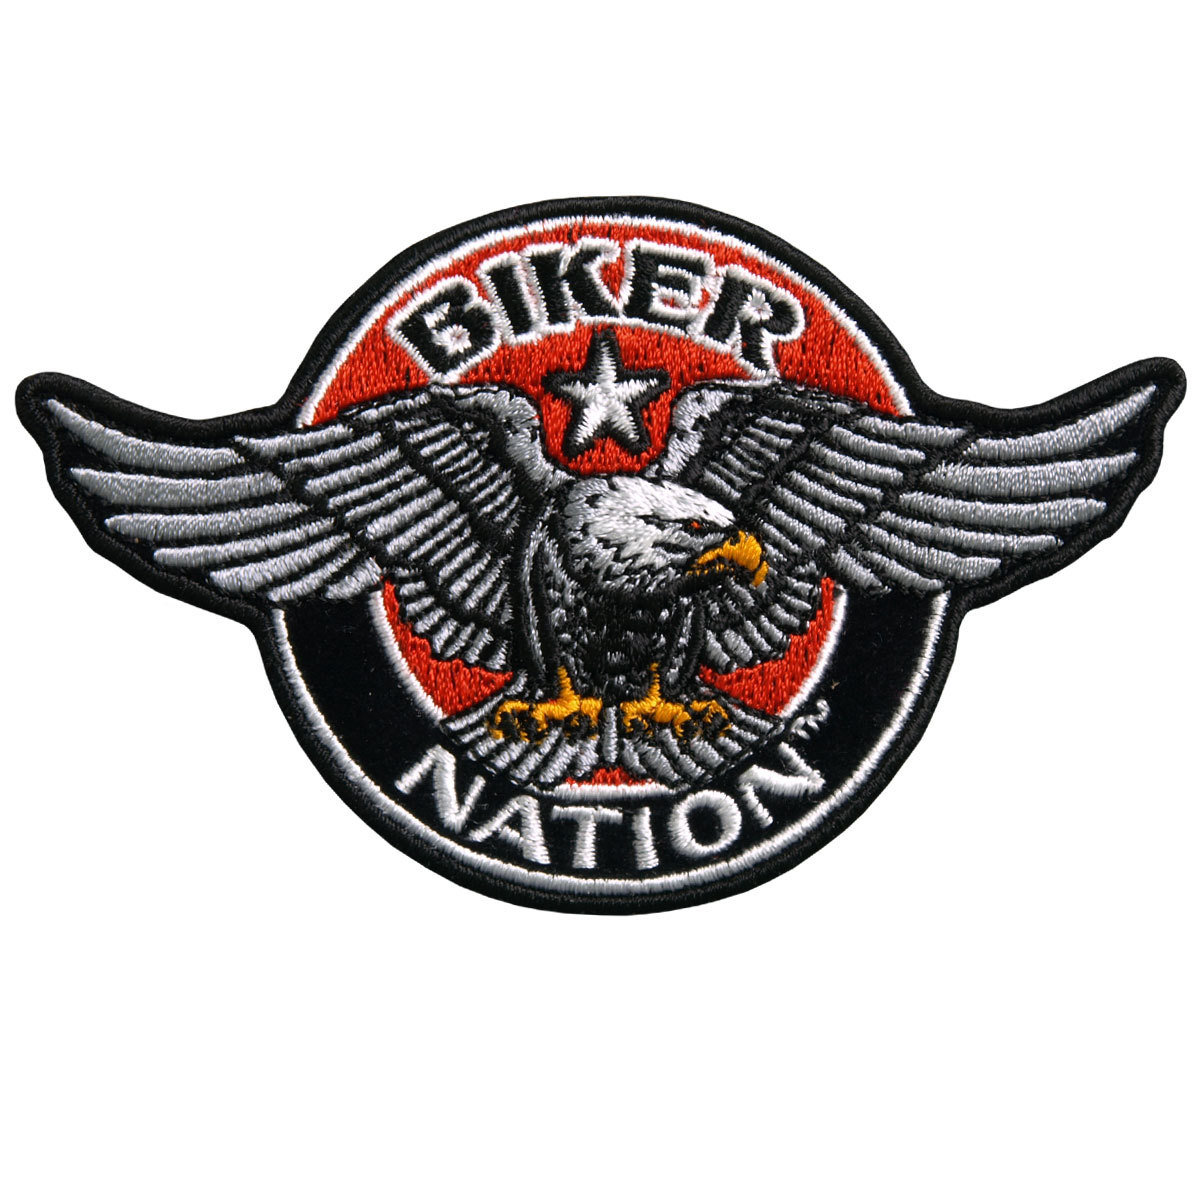 "Motorcycle Biker Uniform Patch 4"" X 3"" Biker Nation Eagle ..."